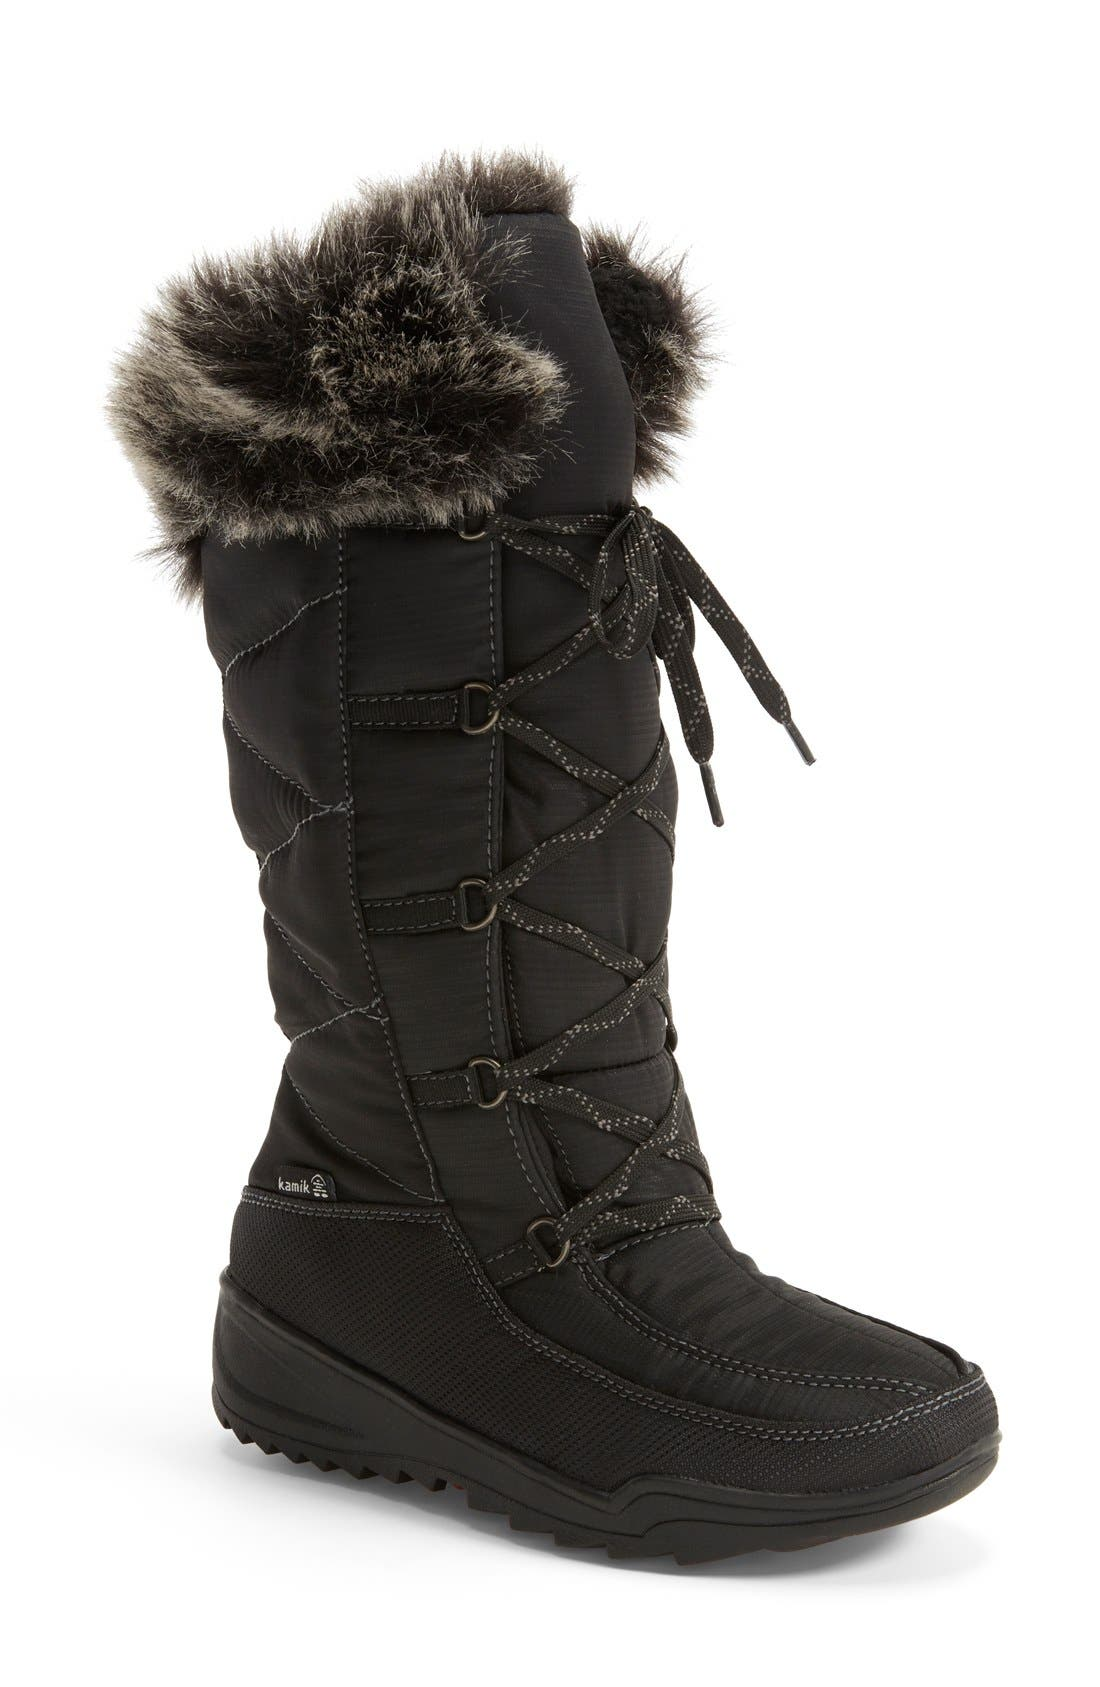 Main Image - Kamik 'Porto' Waterproof Winter Boot (Women)